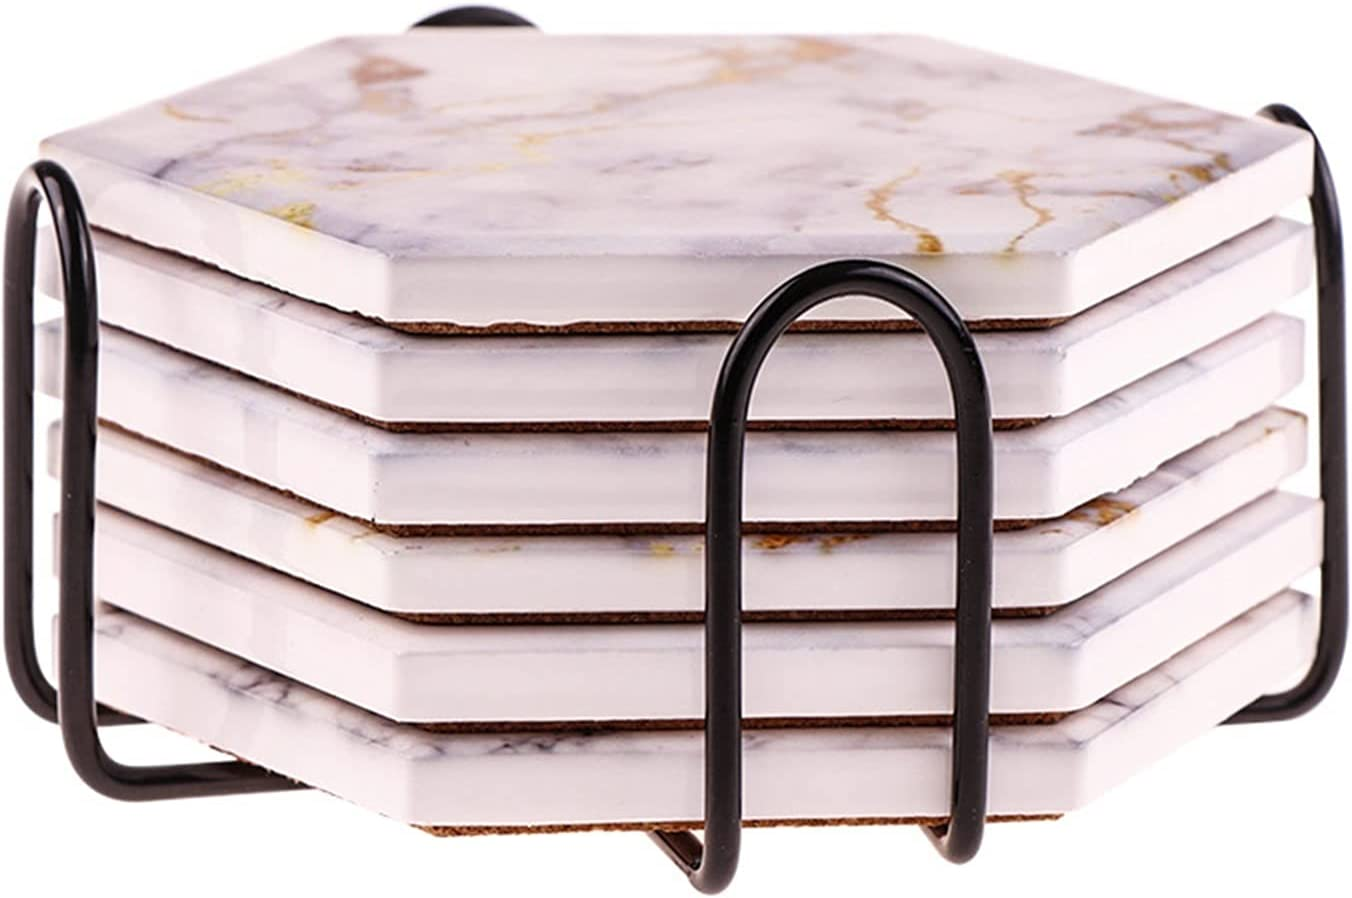 AFTWLKJ 6Pcs Max 43% OFF Coasters for gift Drinks Marble Absorbent De Holder with